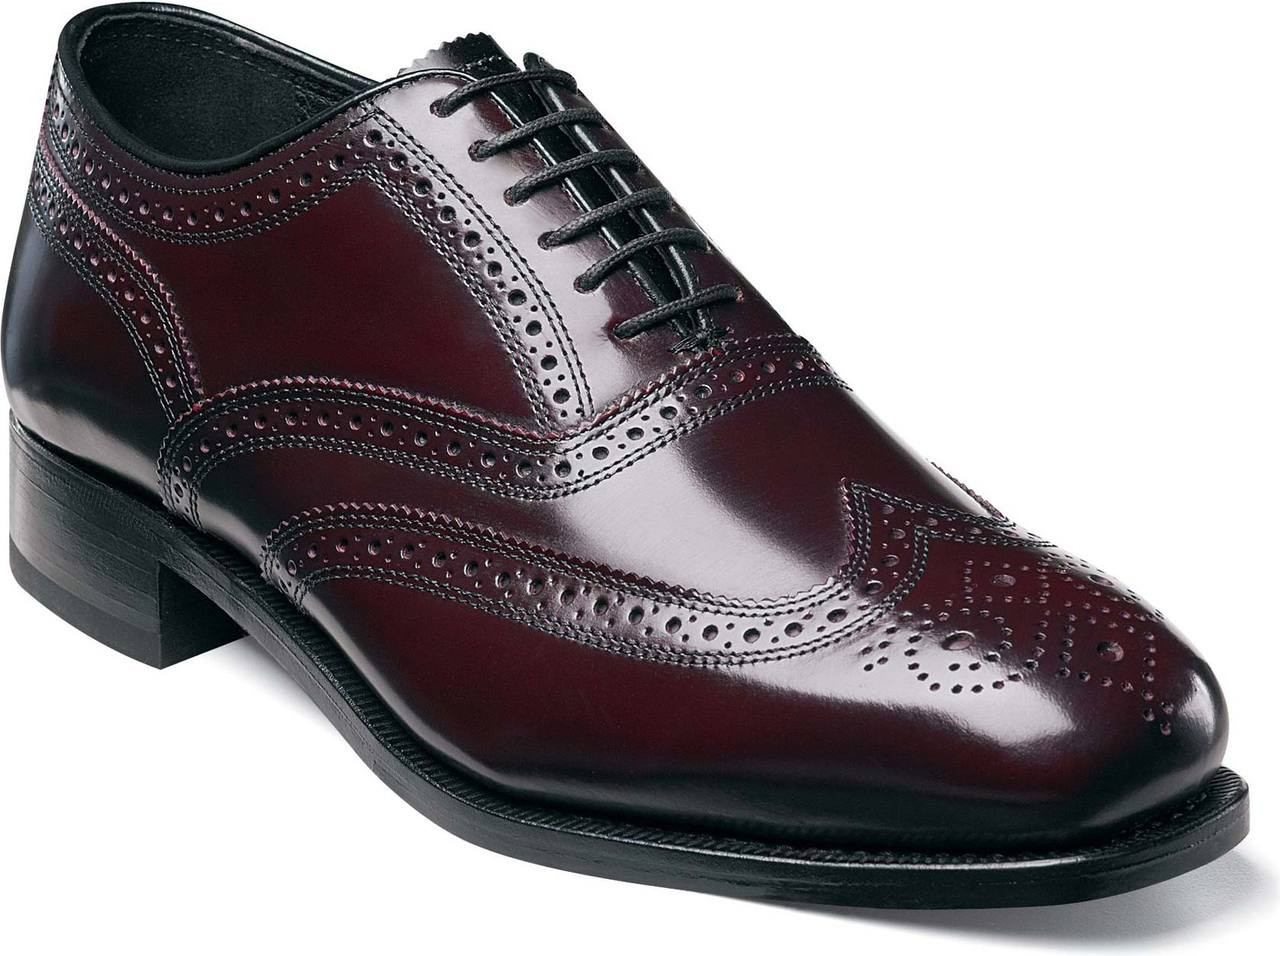 New Style Oxford Shoes